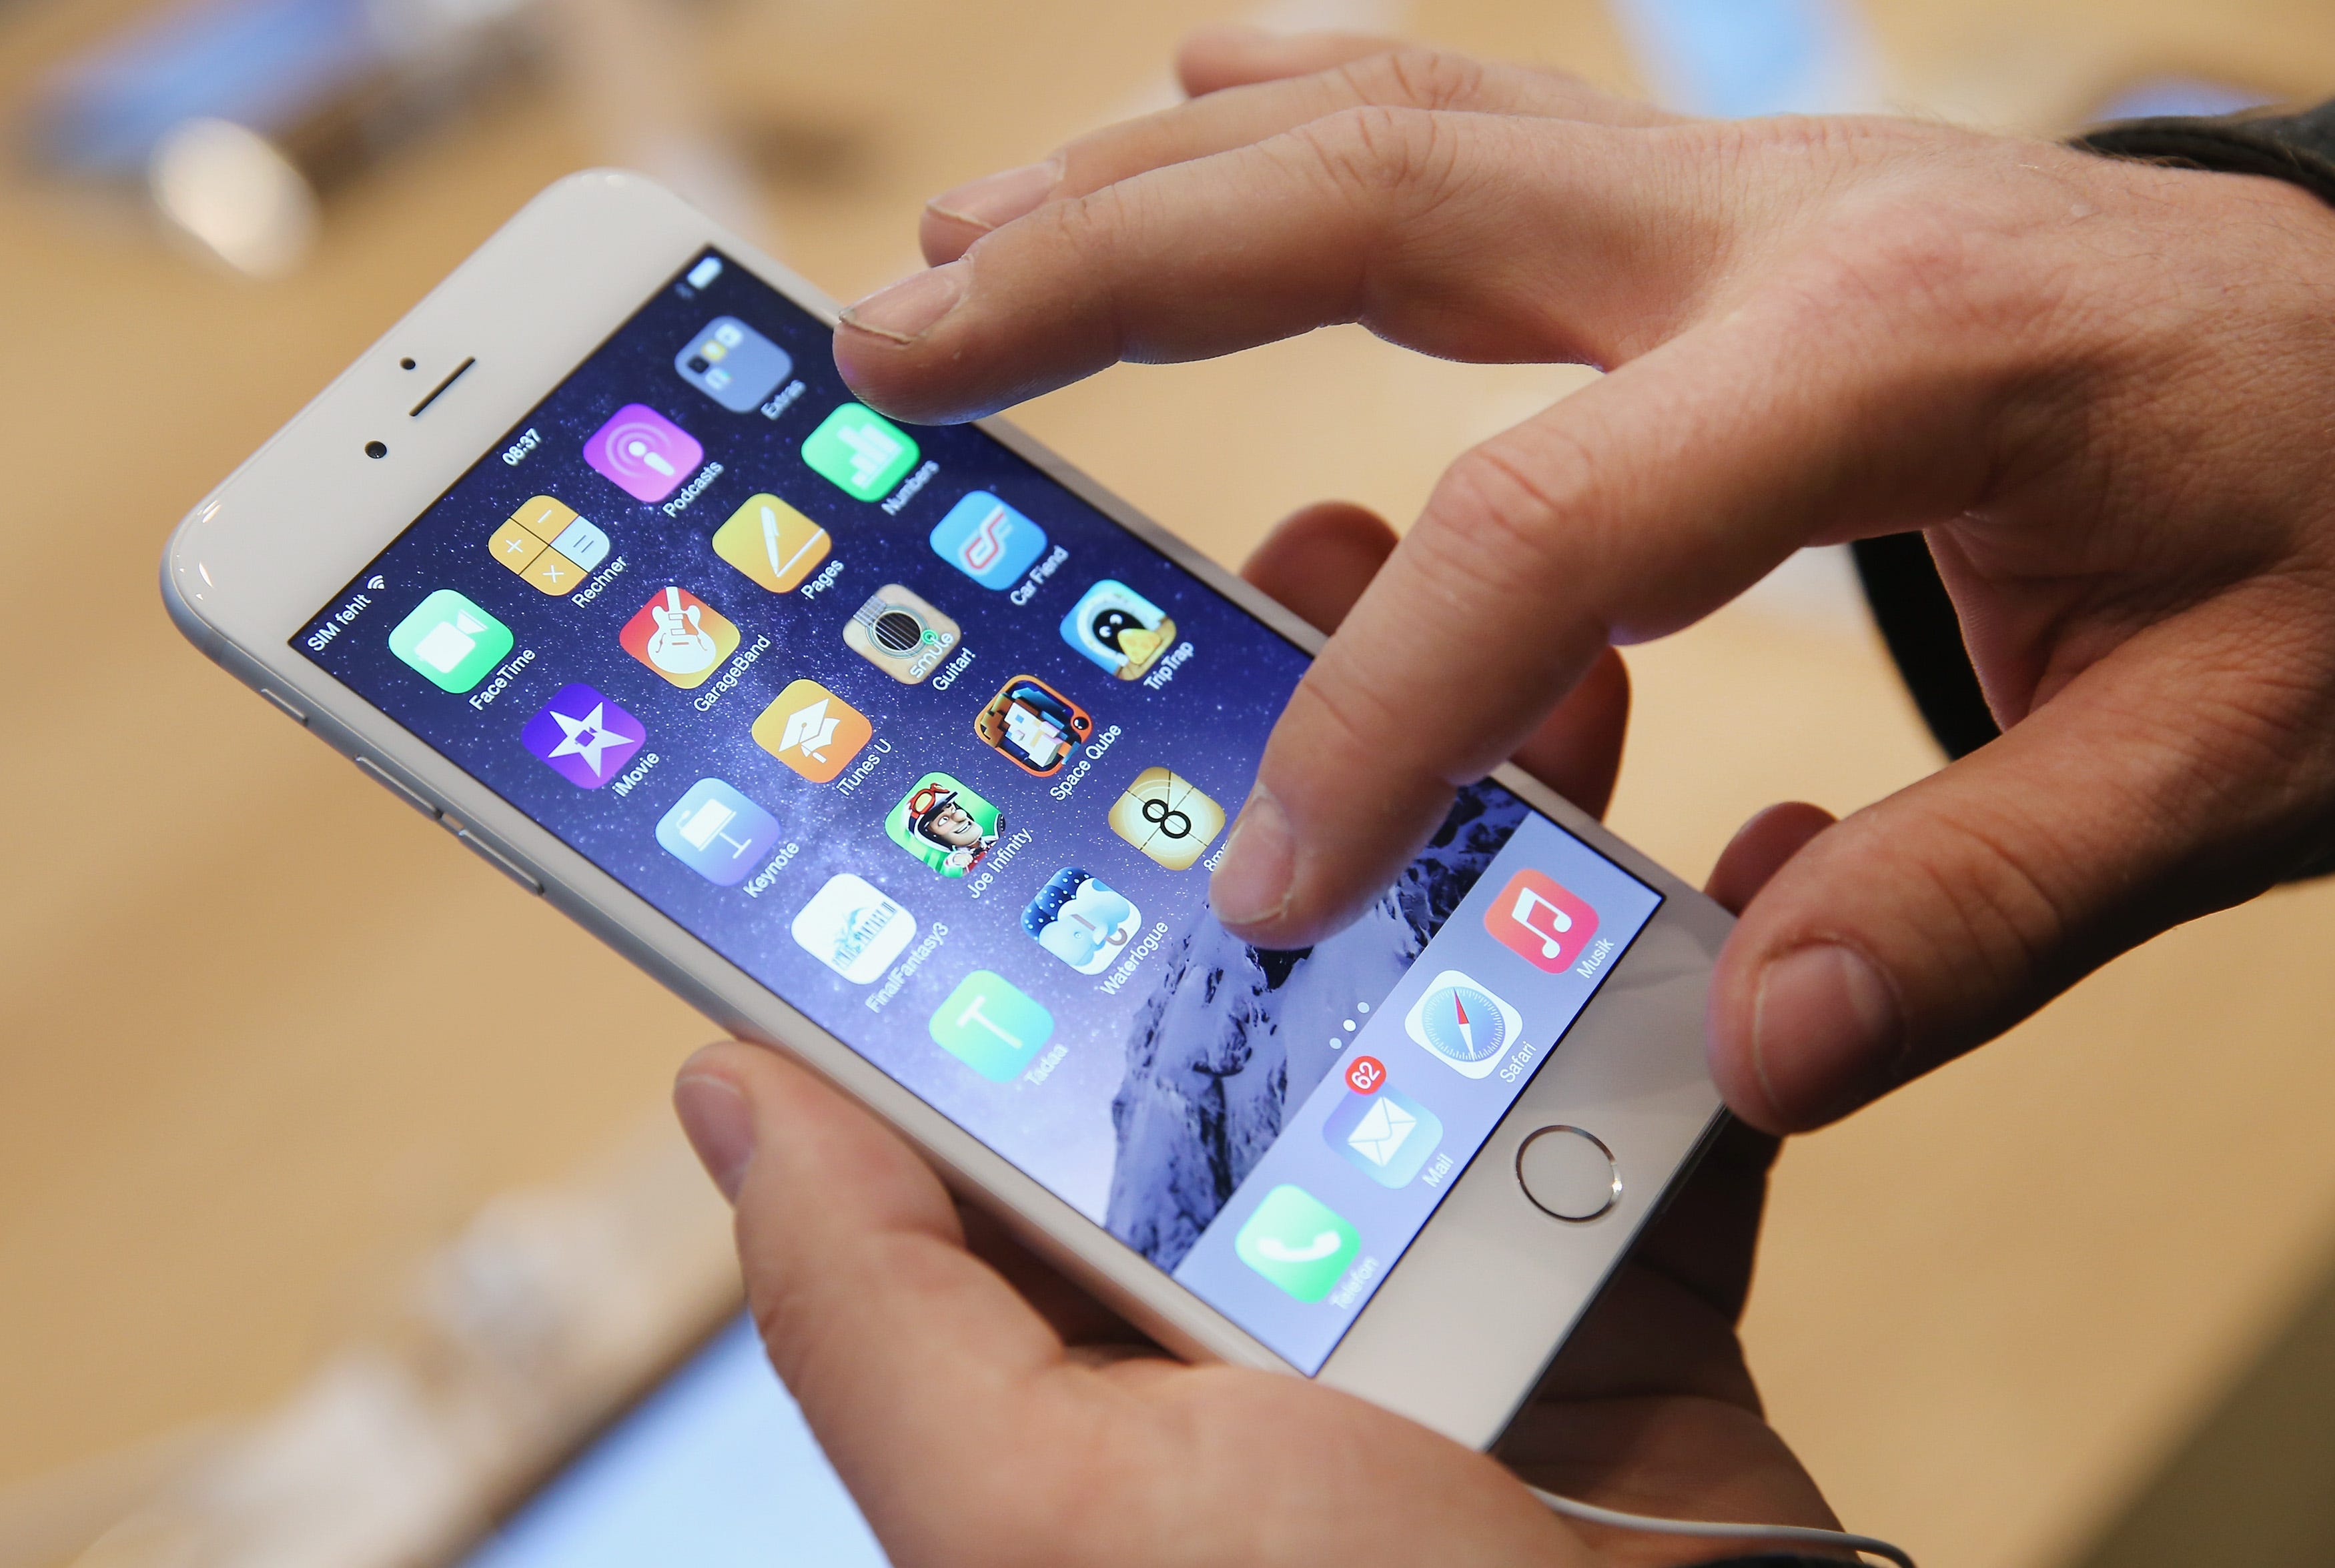 With Ios 13 Update Goodbye Iphone 6 Other Budget Options From Apple